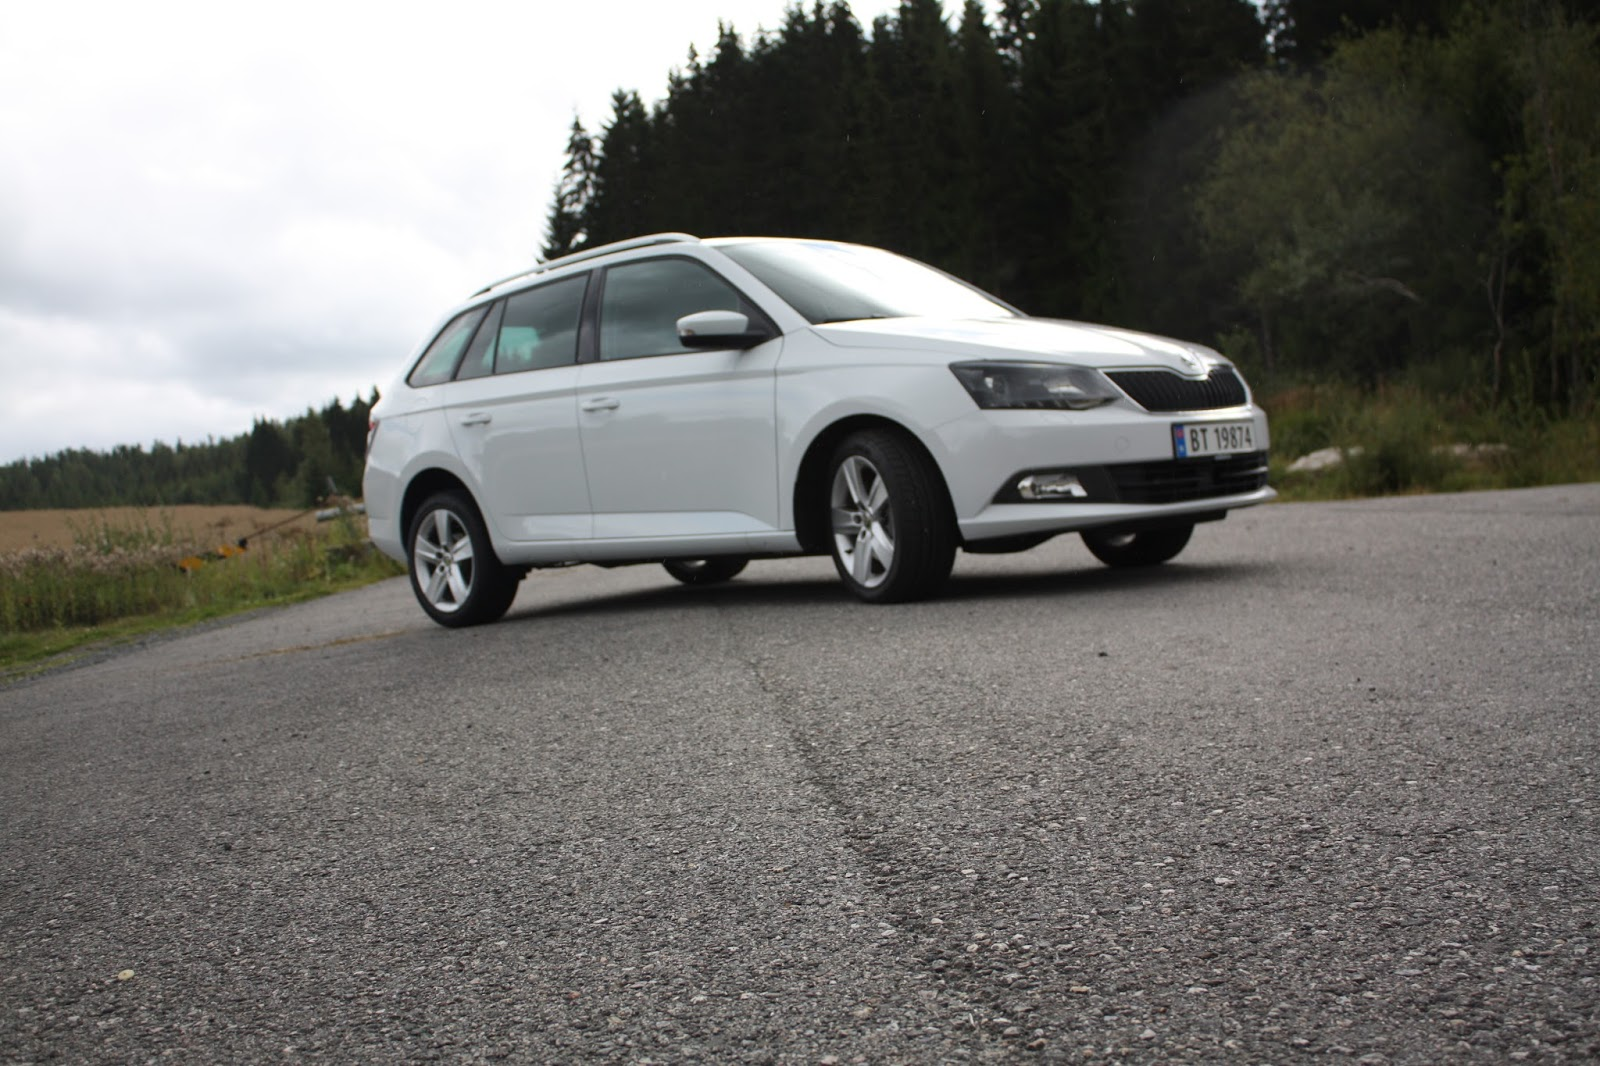 test skoda fabia style 1 2 tsi dsg stasjonsvogn bil og motorbloggen. Black Bedroom Furniture Sets. Home Design Ideas